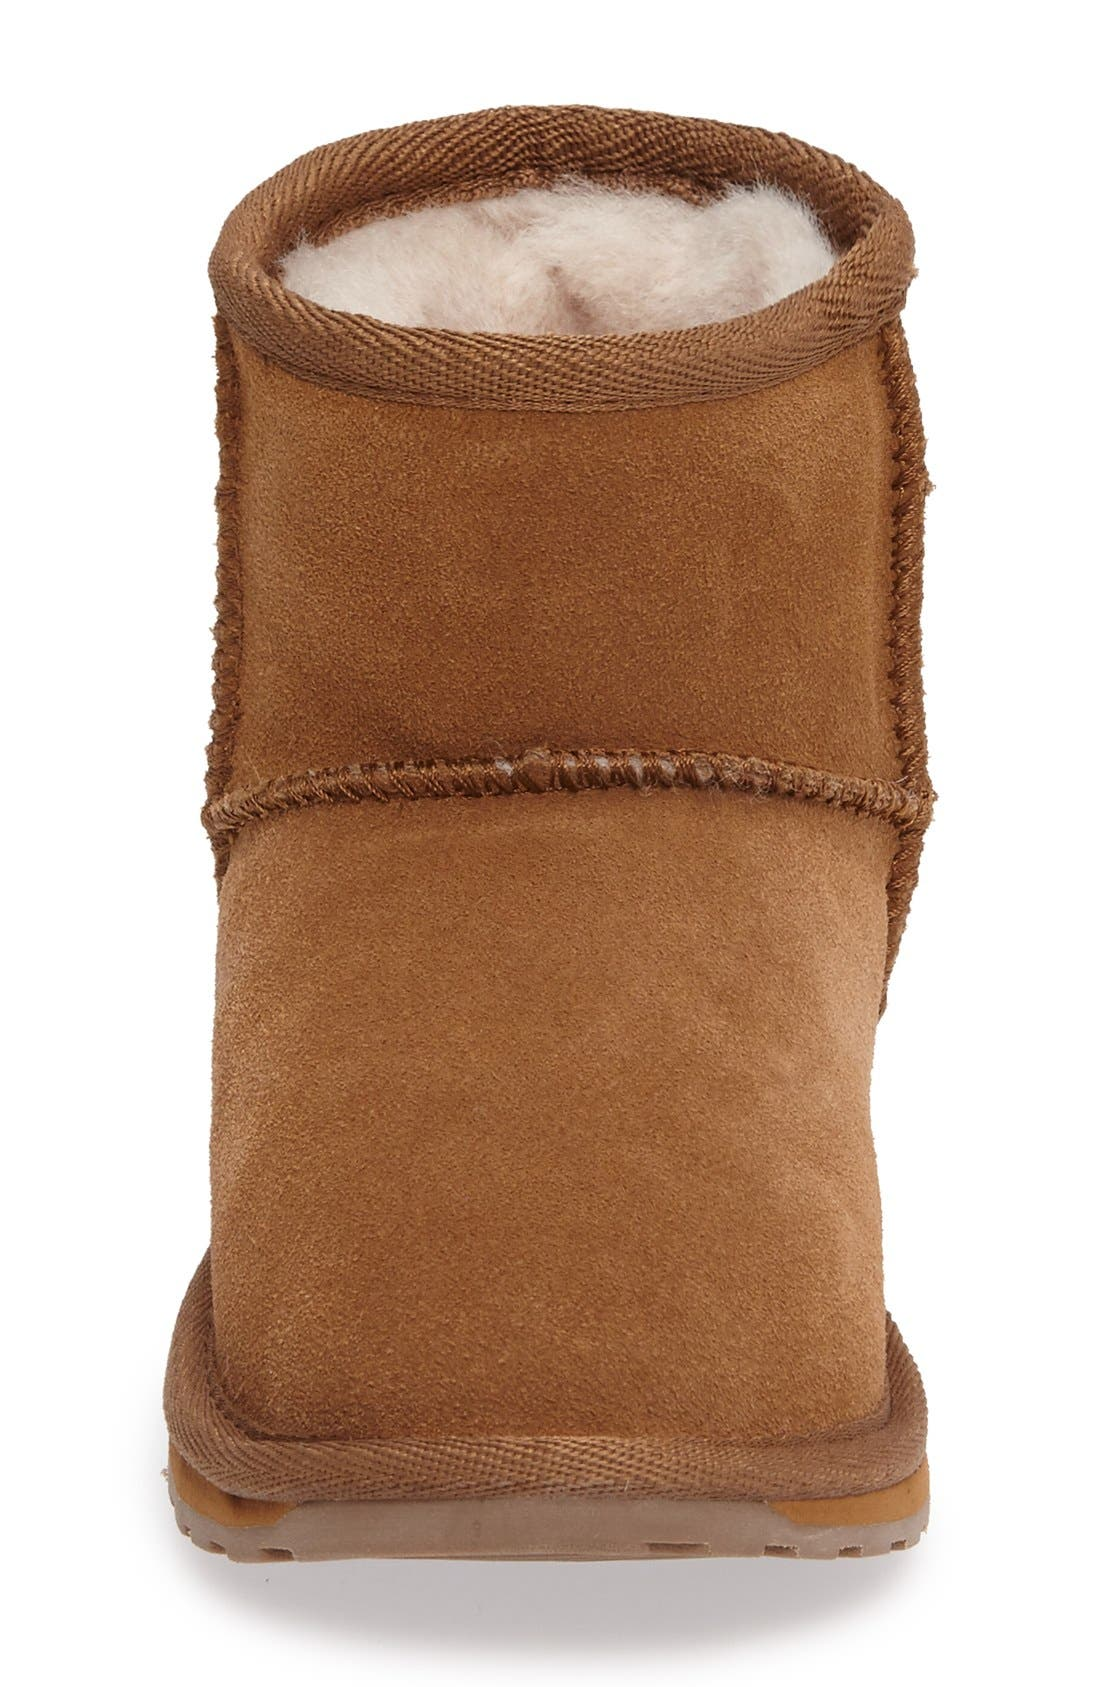 Wallaby Boot,                             Alternate thumbnail 3, color,                             Chestnut